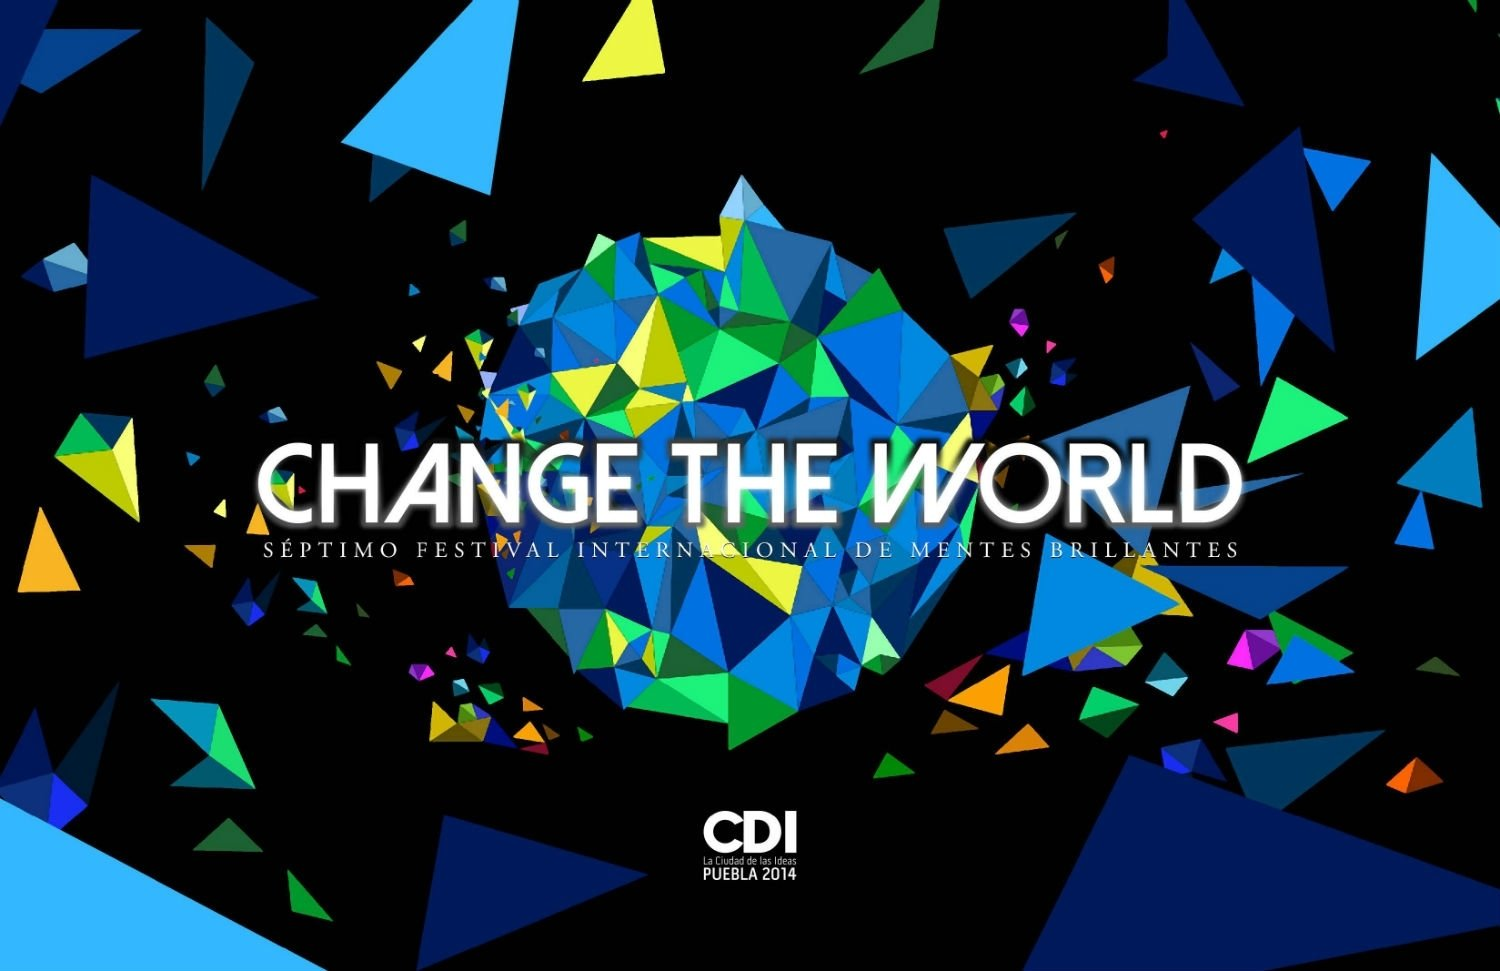 change the world: temática de ciudad de las ideas | e-consulta 2018